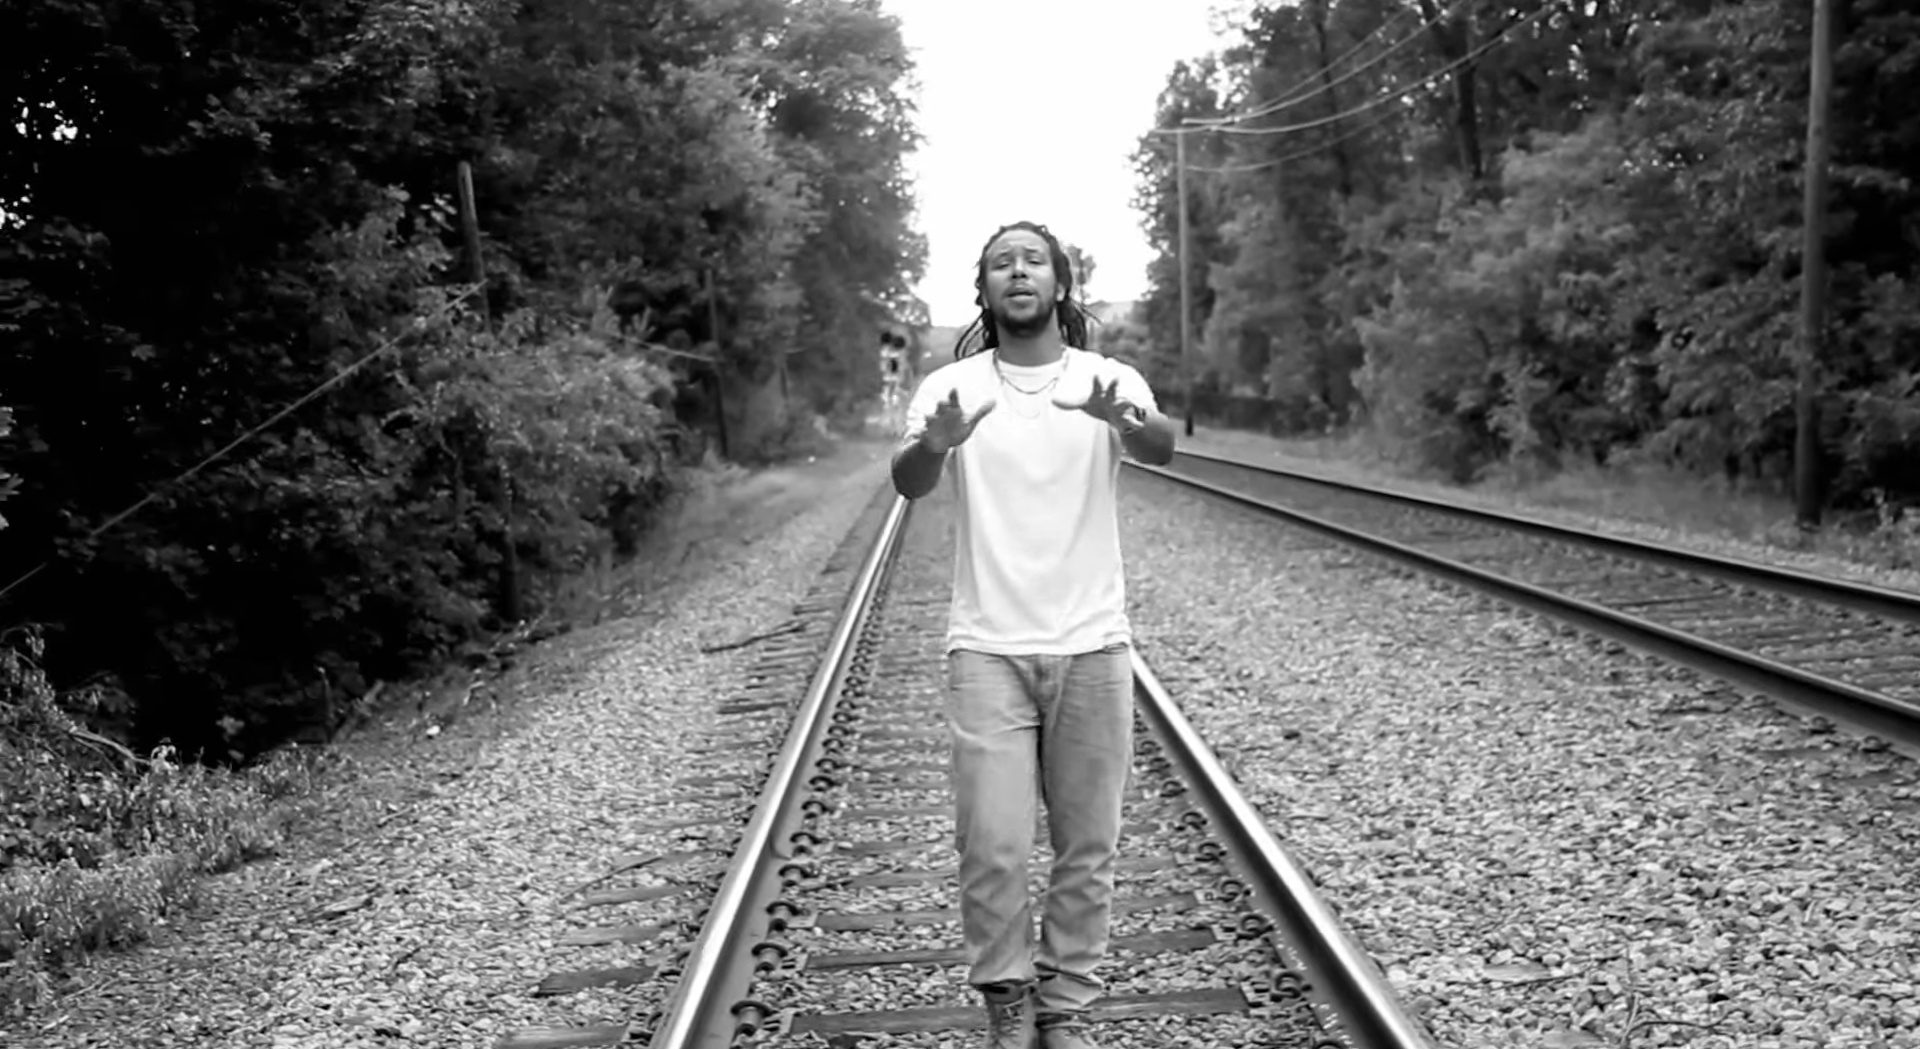 Boston roots reggae act Mighty Mystic releases a somber music video for a somber song off their latest release